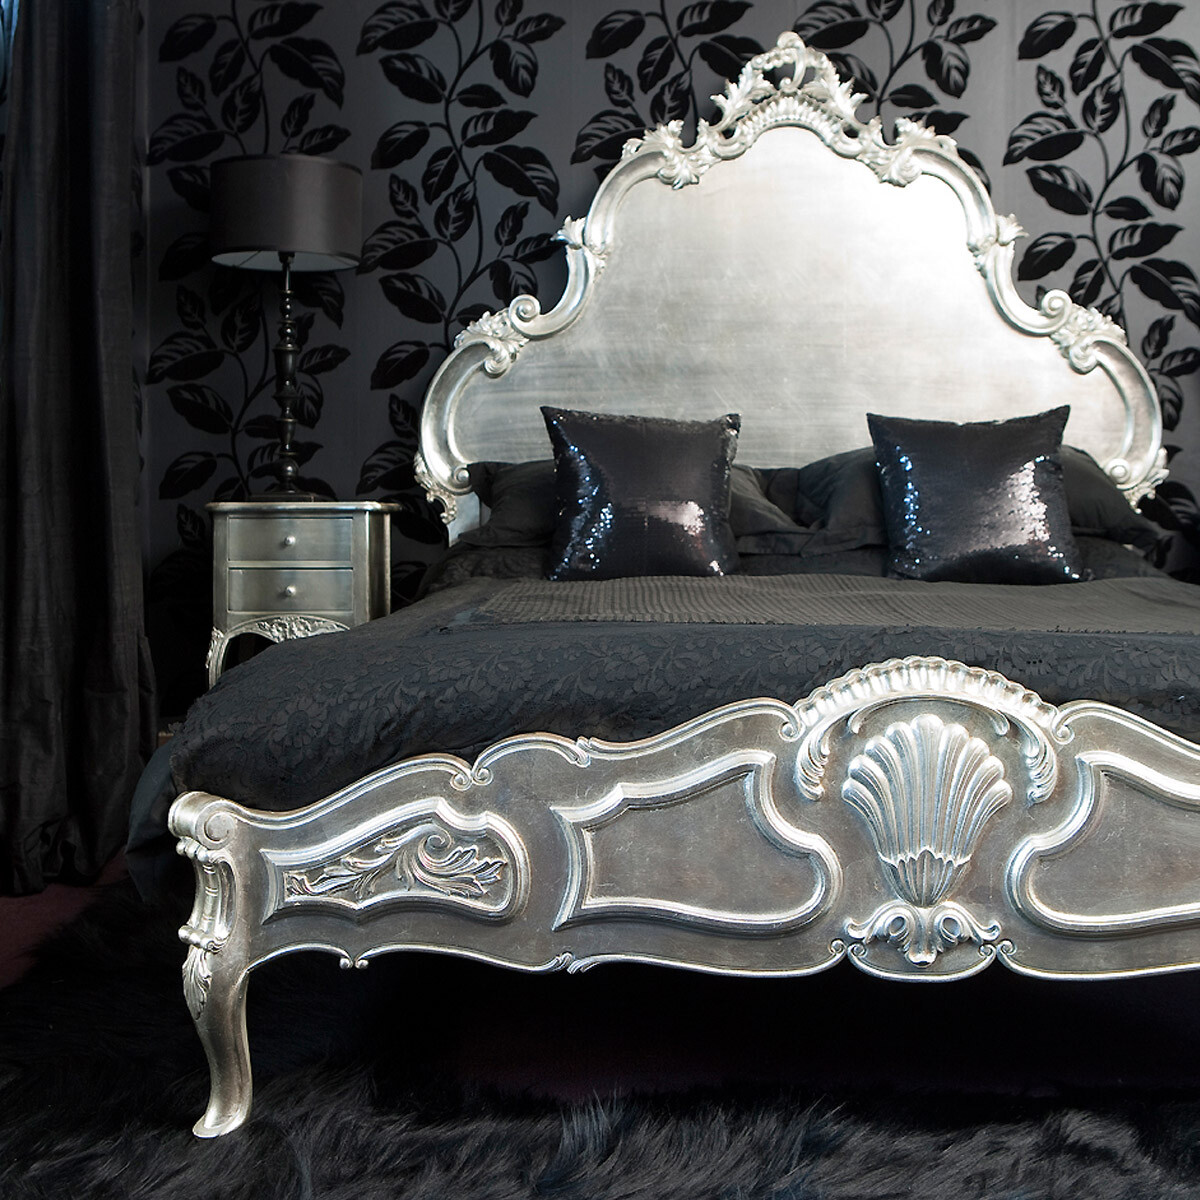 French Bedroom Black And White Teenage Bedroom Wallpaper Uk Wooden Bedroom Blinds Bedroom Oasis Decorating Ideas: French Bed: Rafinament, Elegance And Romance In Your Bedroom